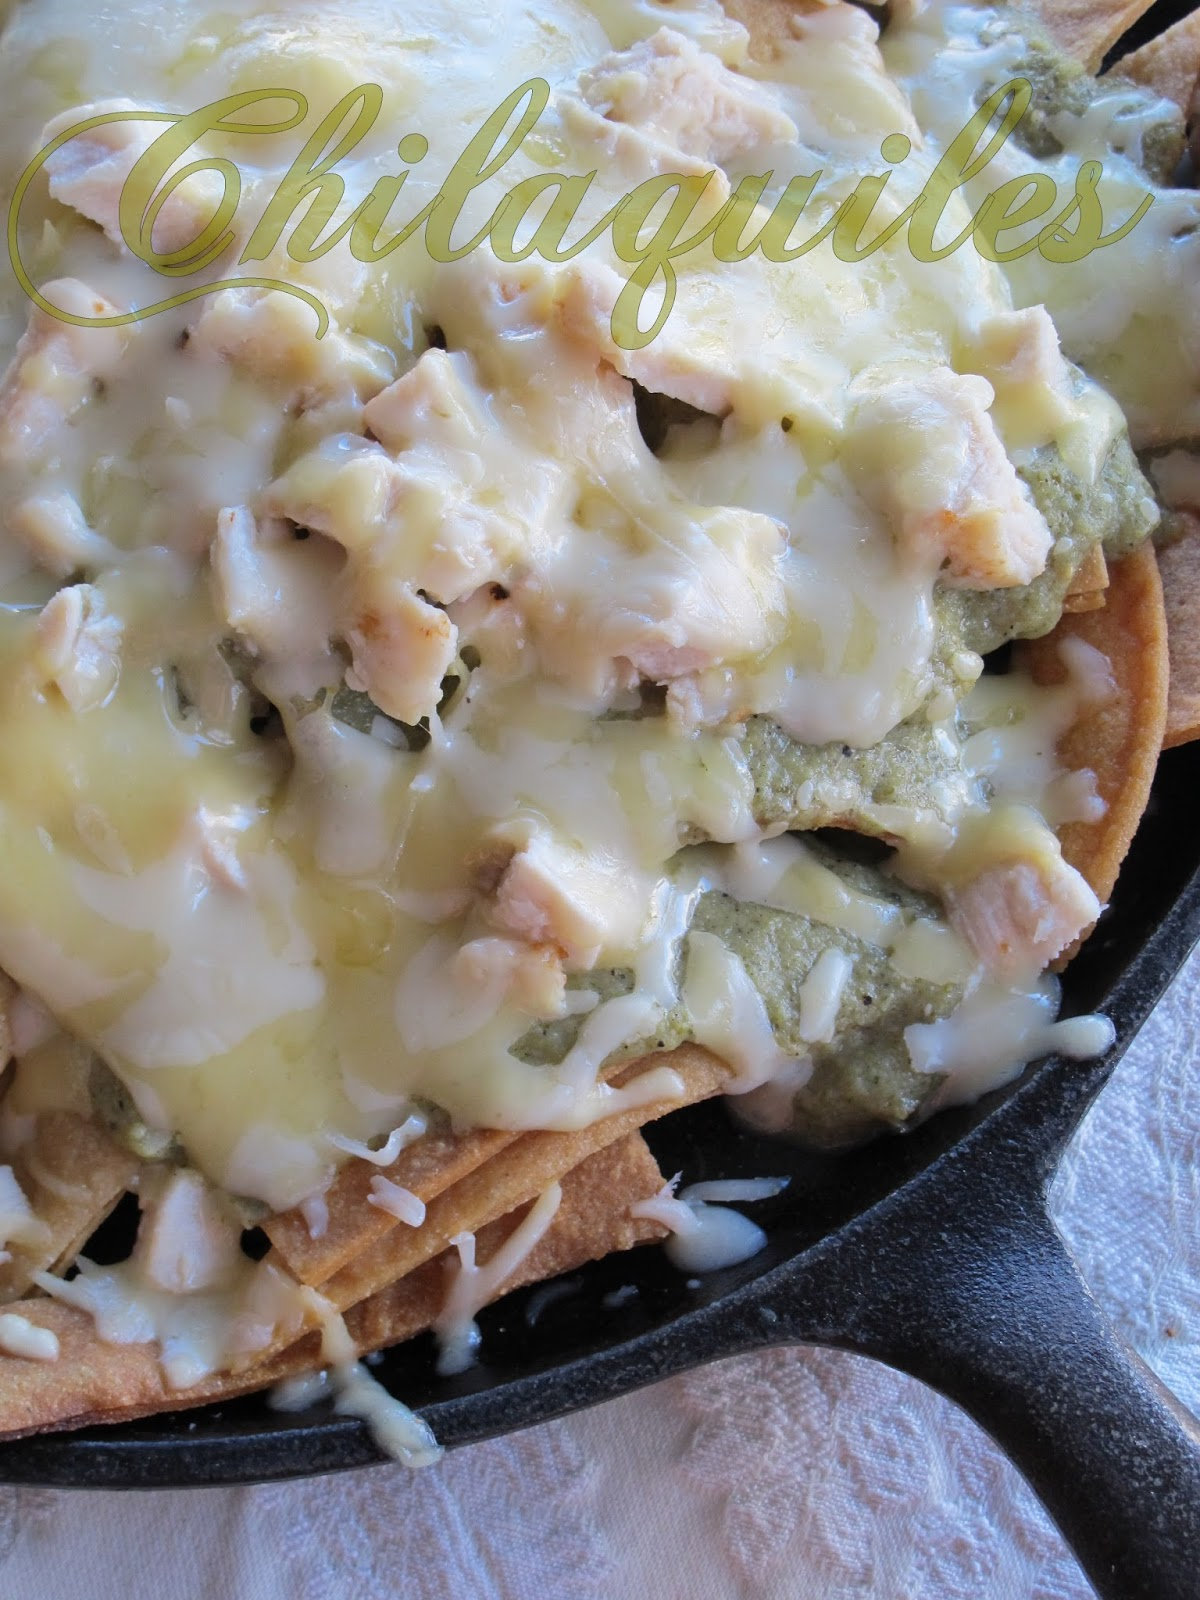 Purple Chocolat Home: Chilaquiles with Chicken and Roasted Tomatillo ...